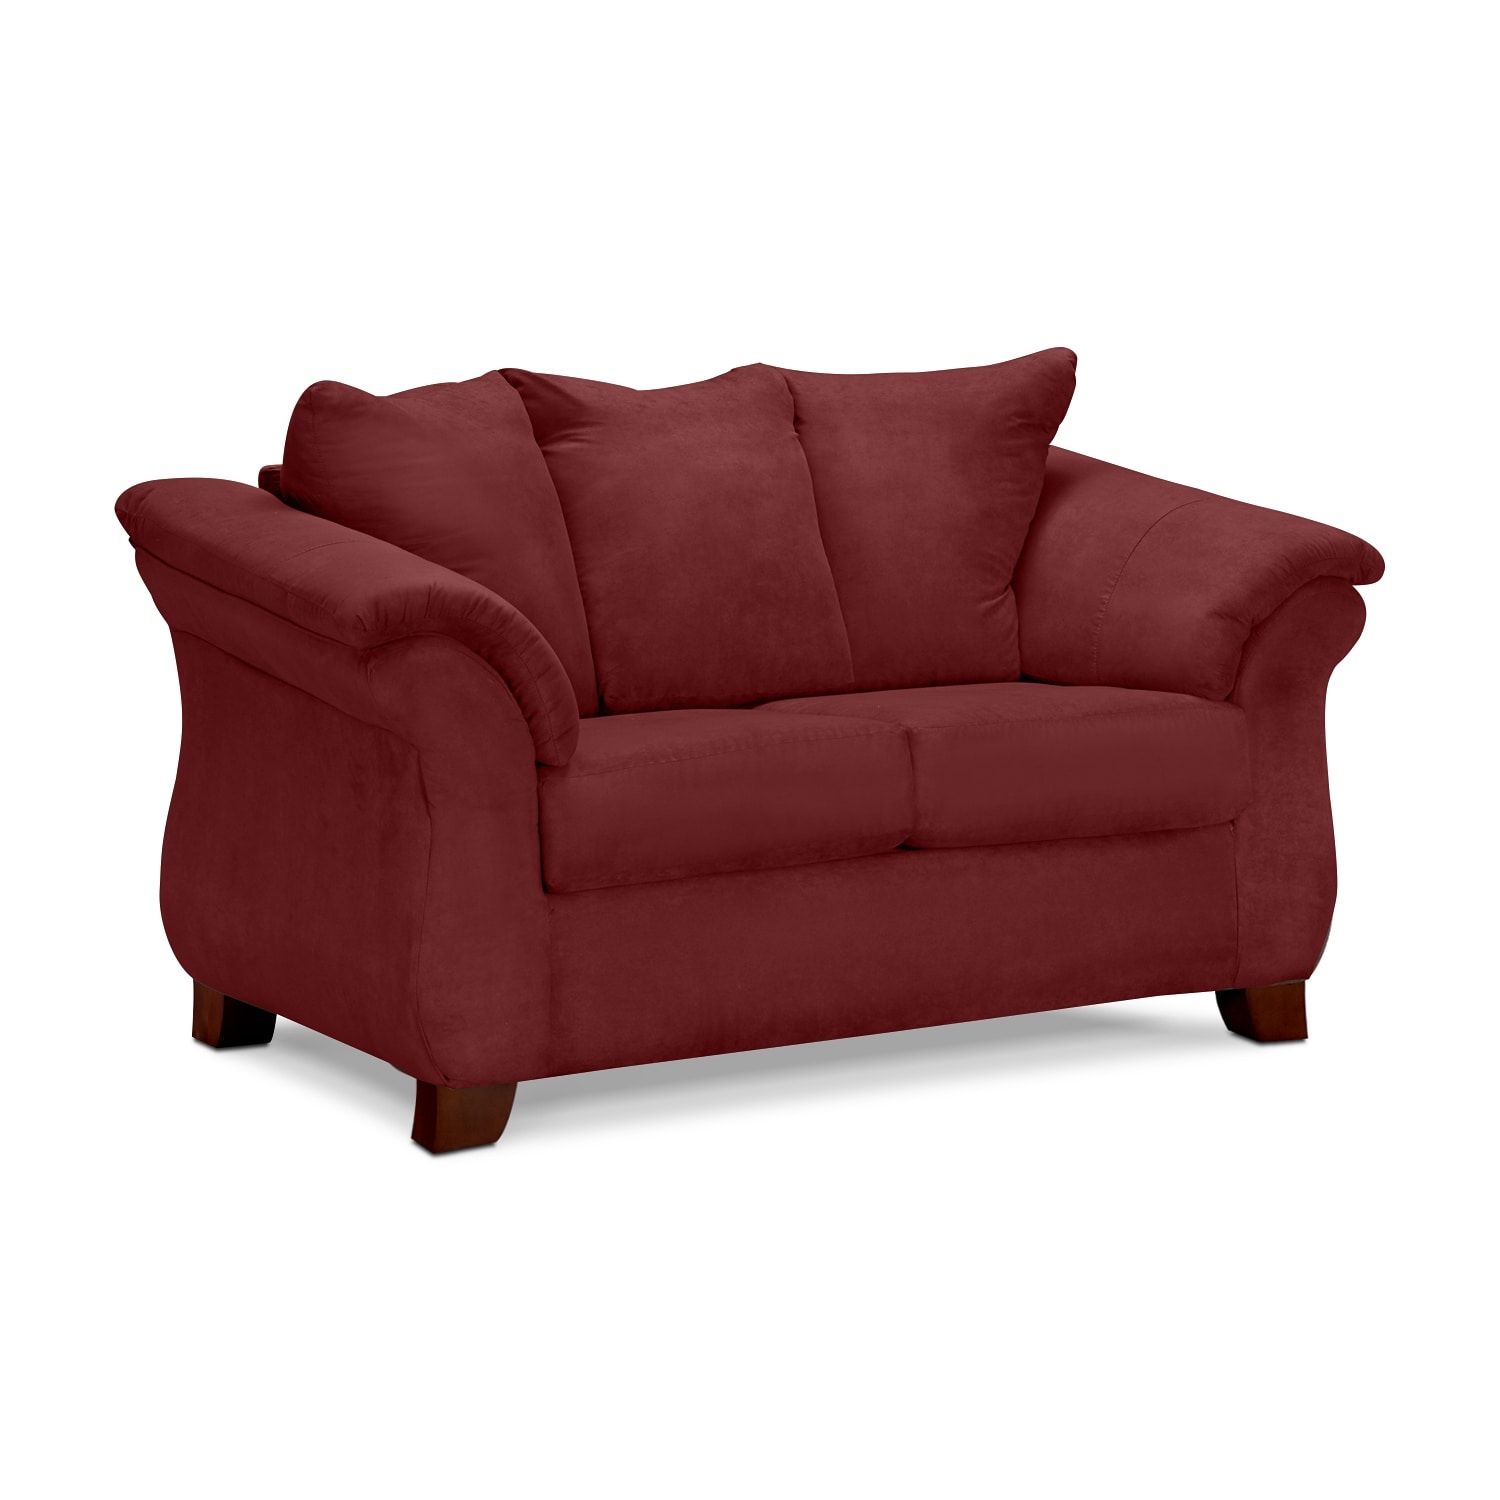 Adrian Sofa Loveseat And Accent Chair Set Red Value City Furniture